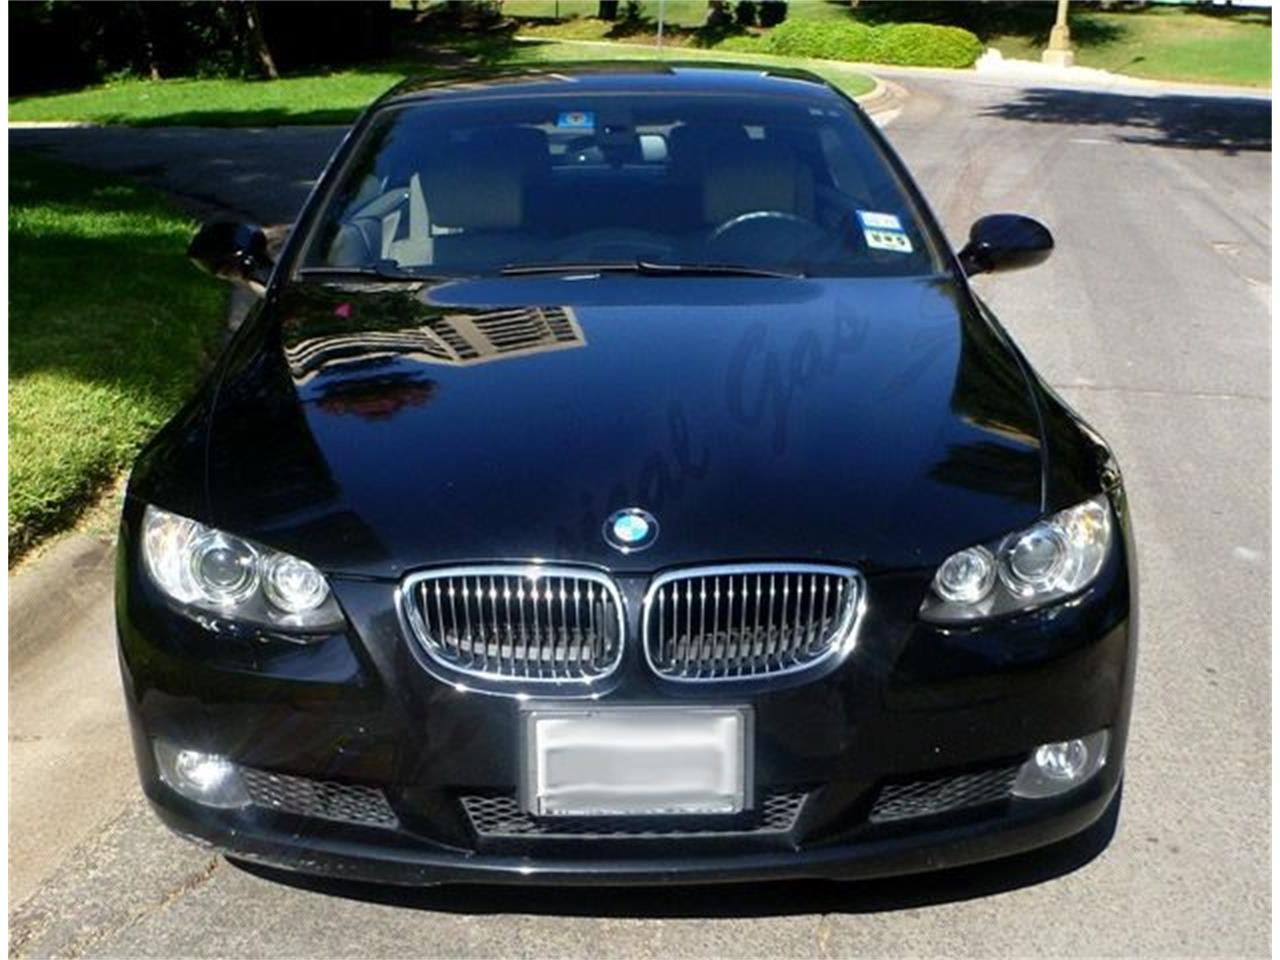 Large Picture of '07 BMW 328i - $21,500.00 - F0JX